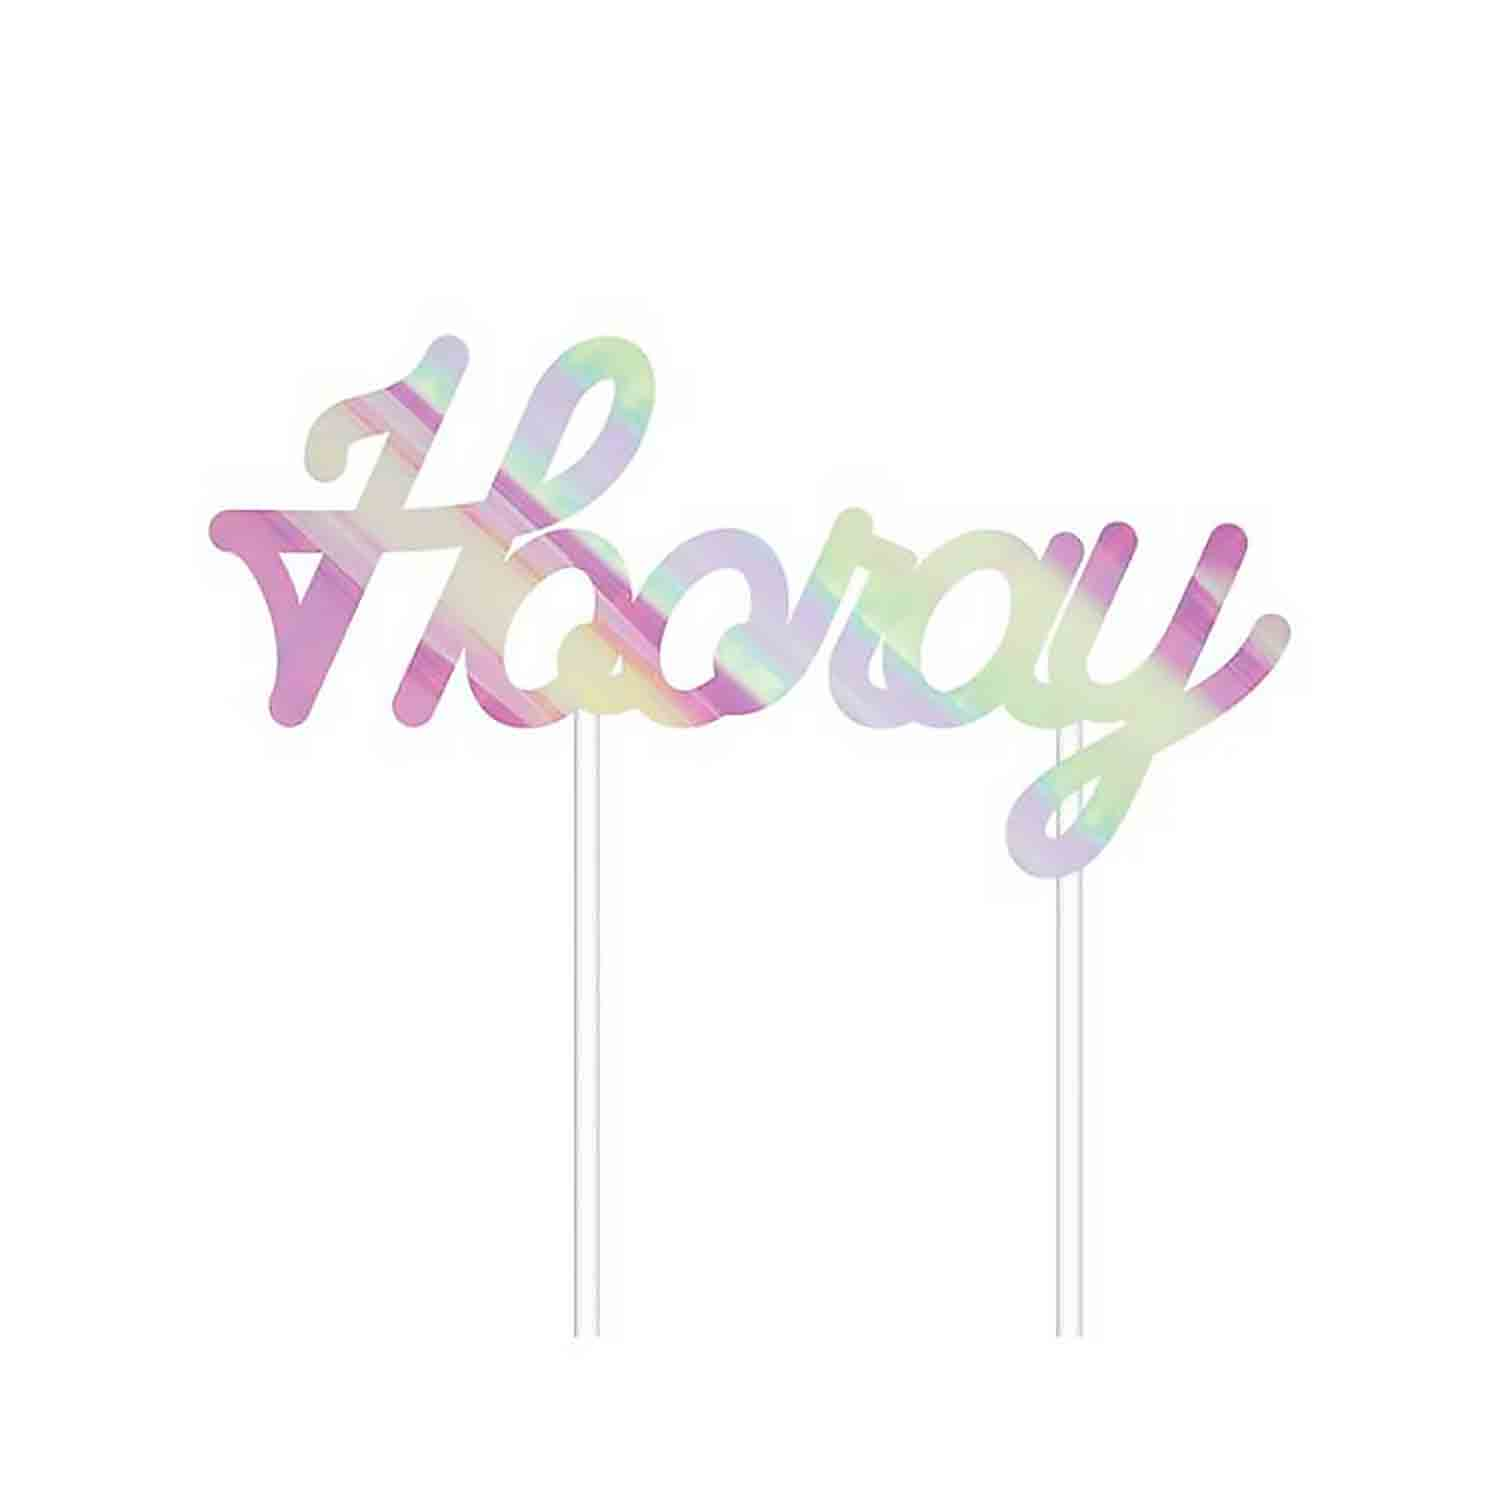 Iridescent Hooray Cake Topper